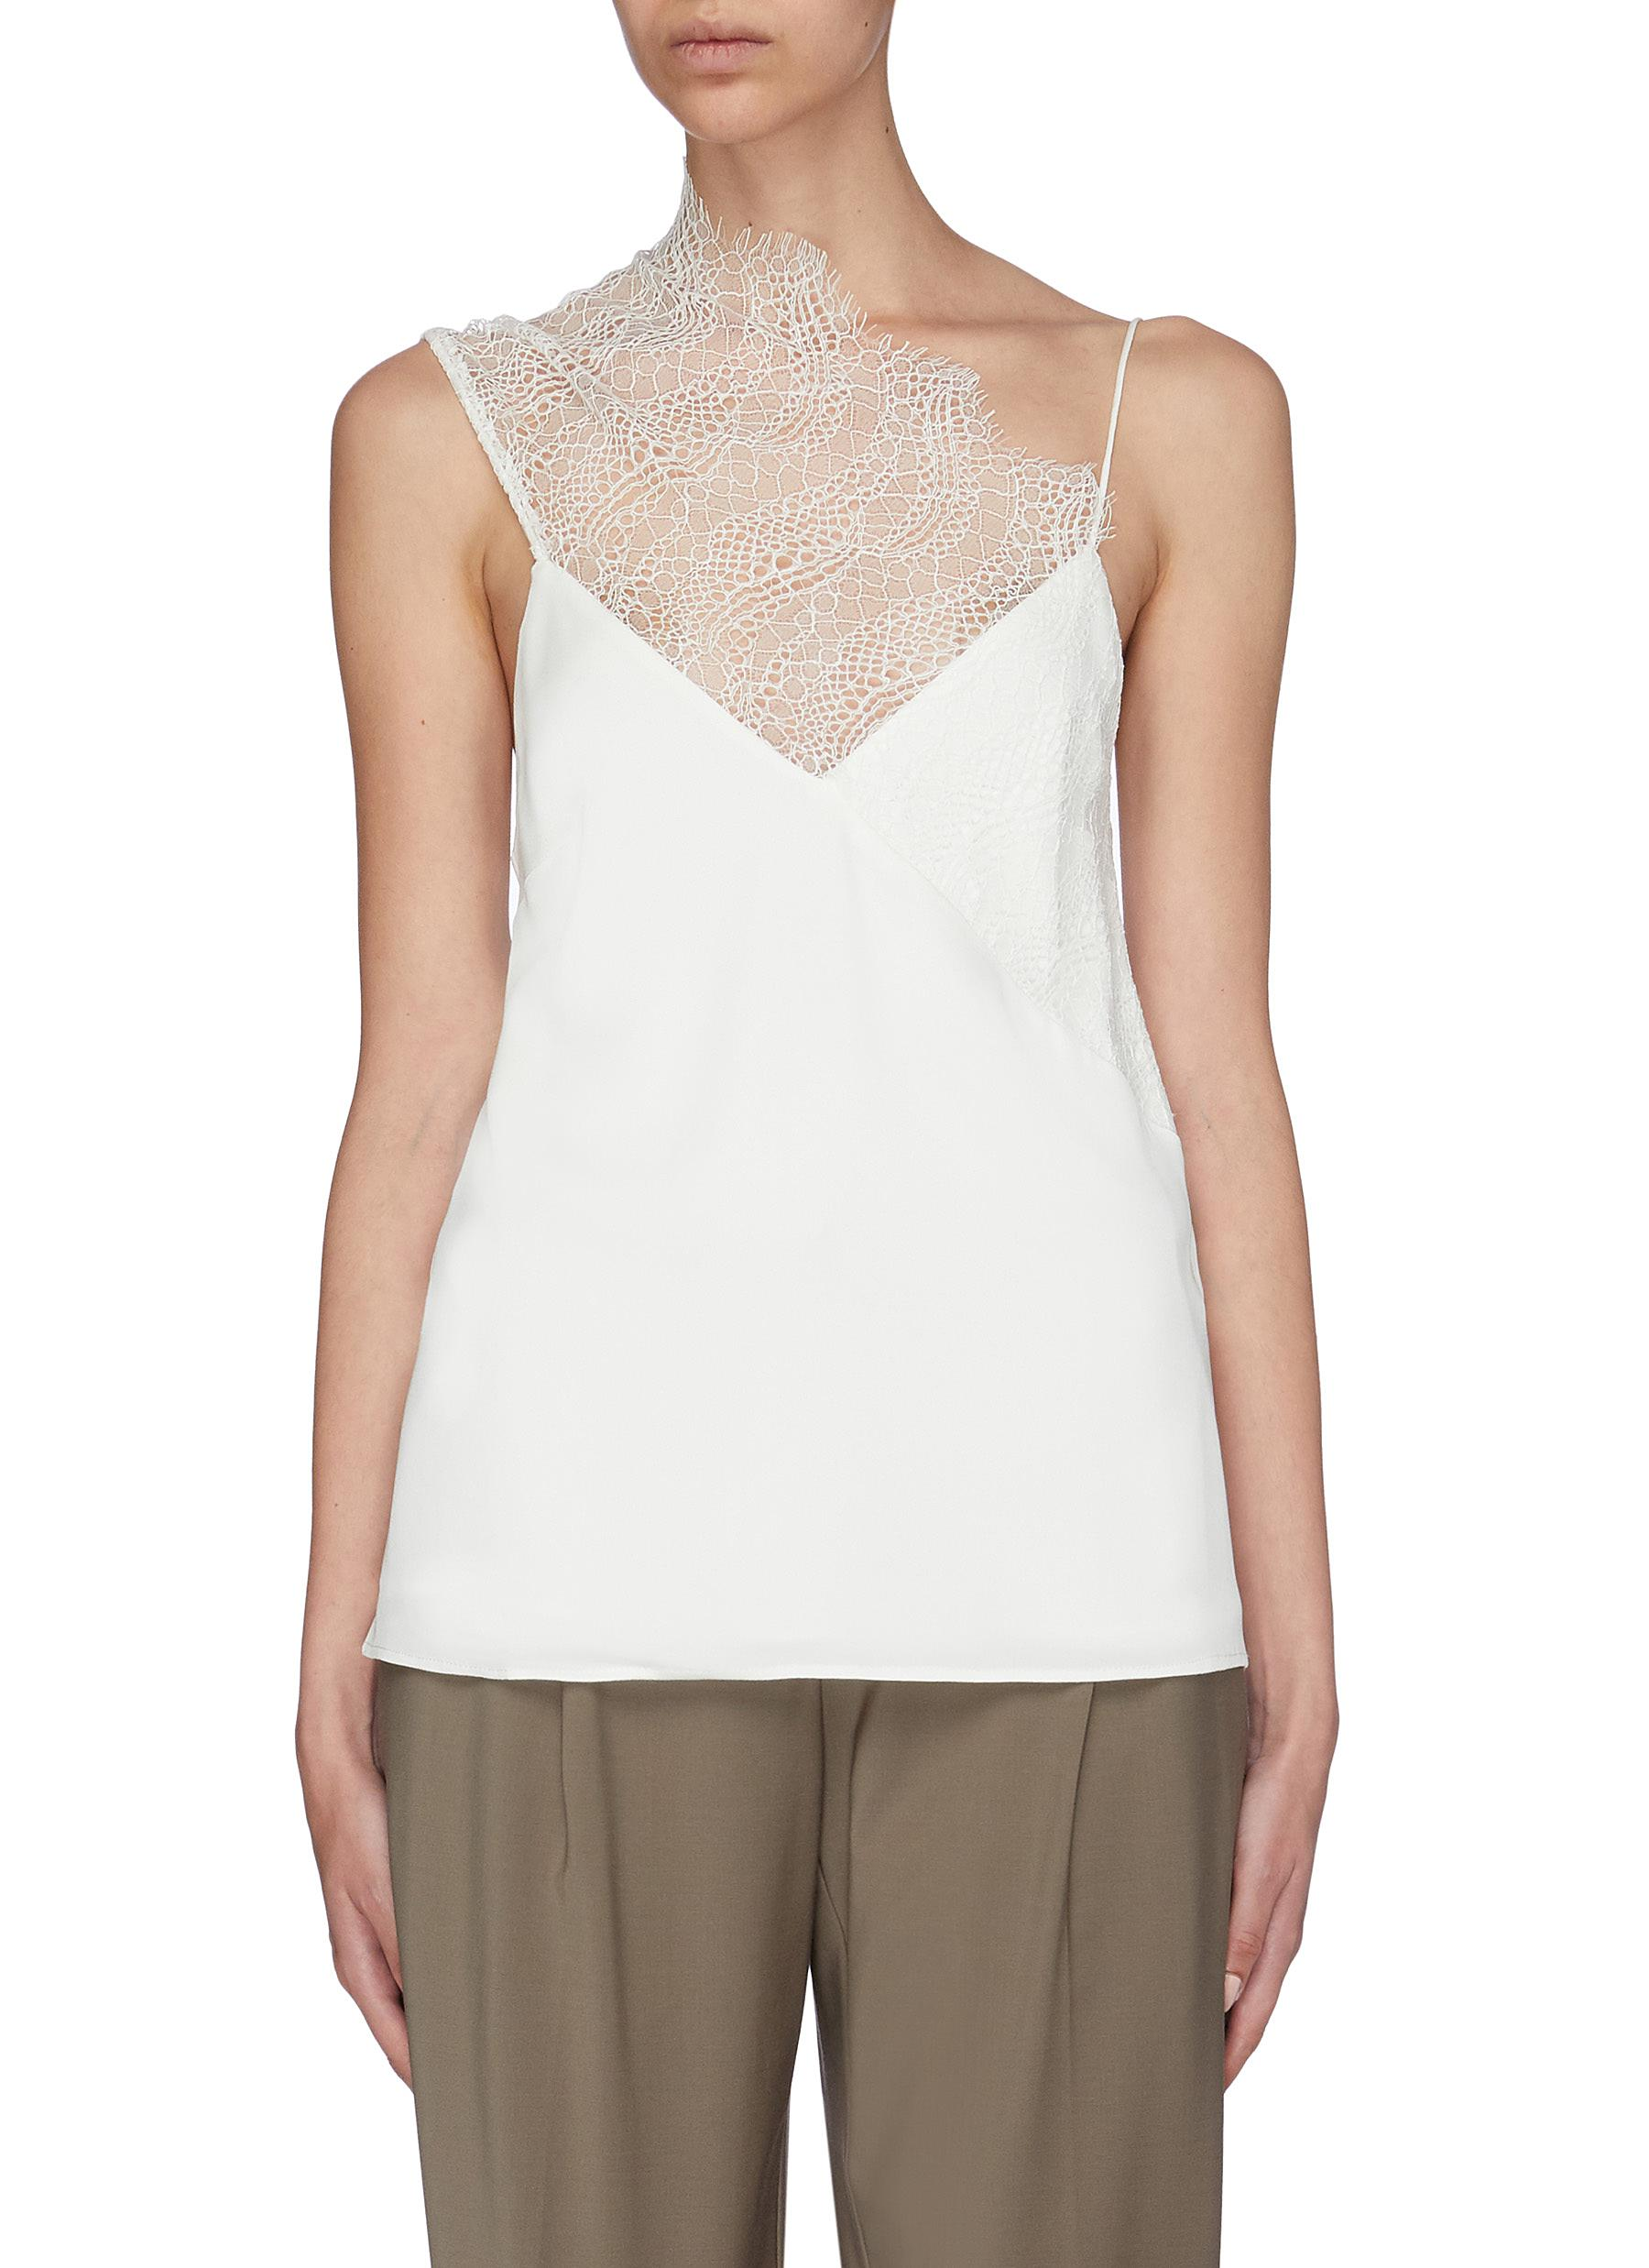 Lace drape neck panel camisole top by Christopher Esber